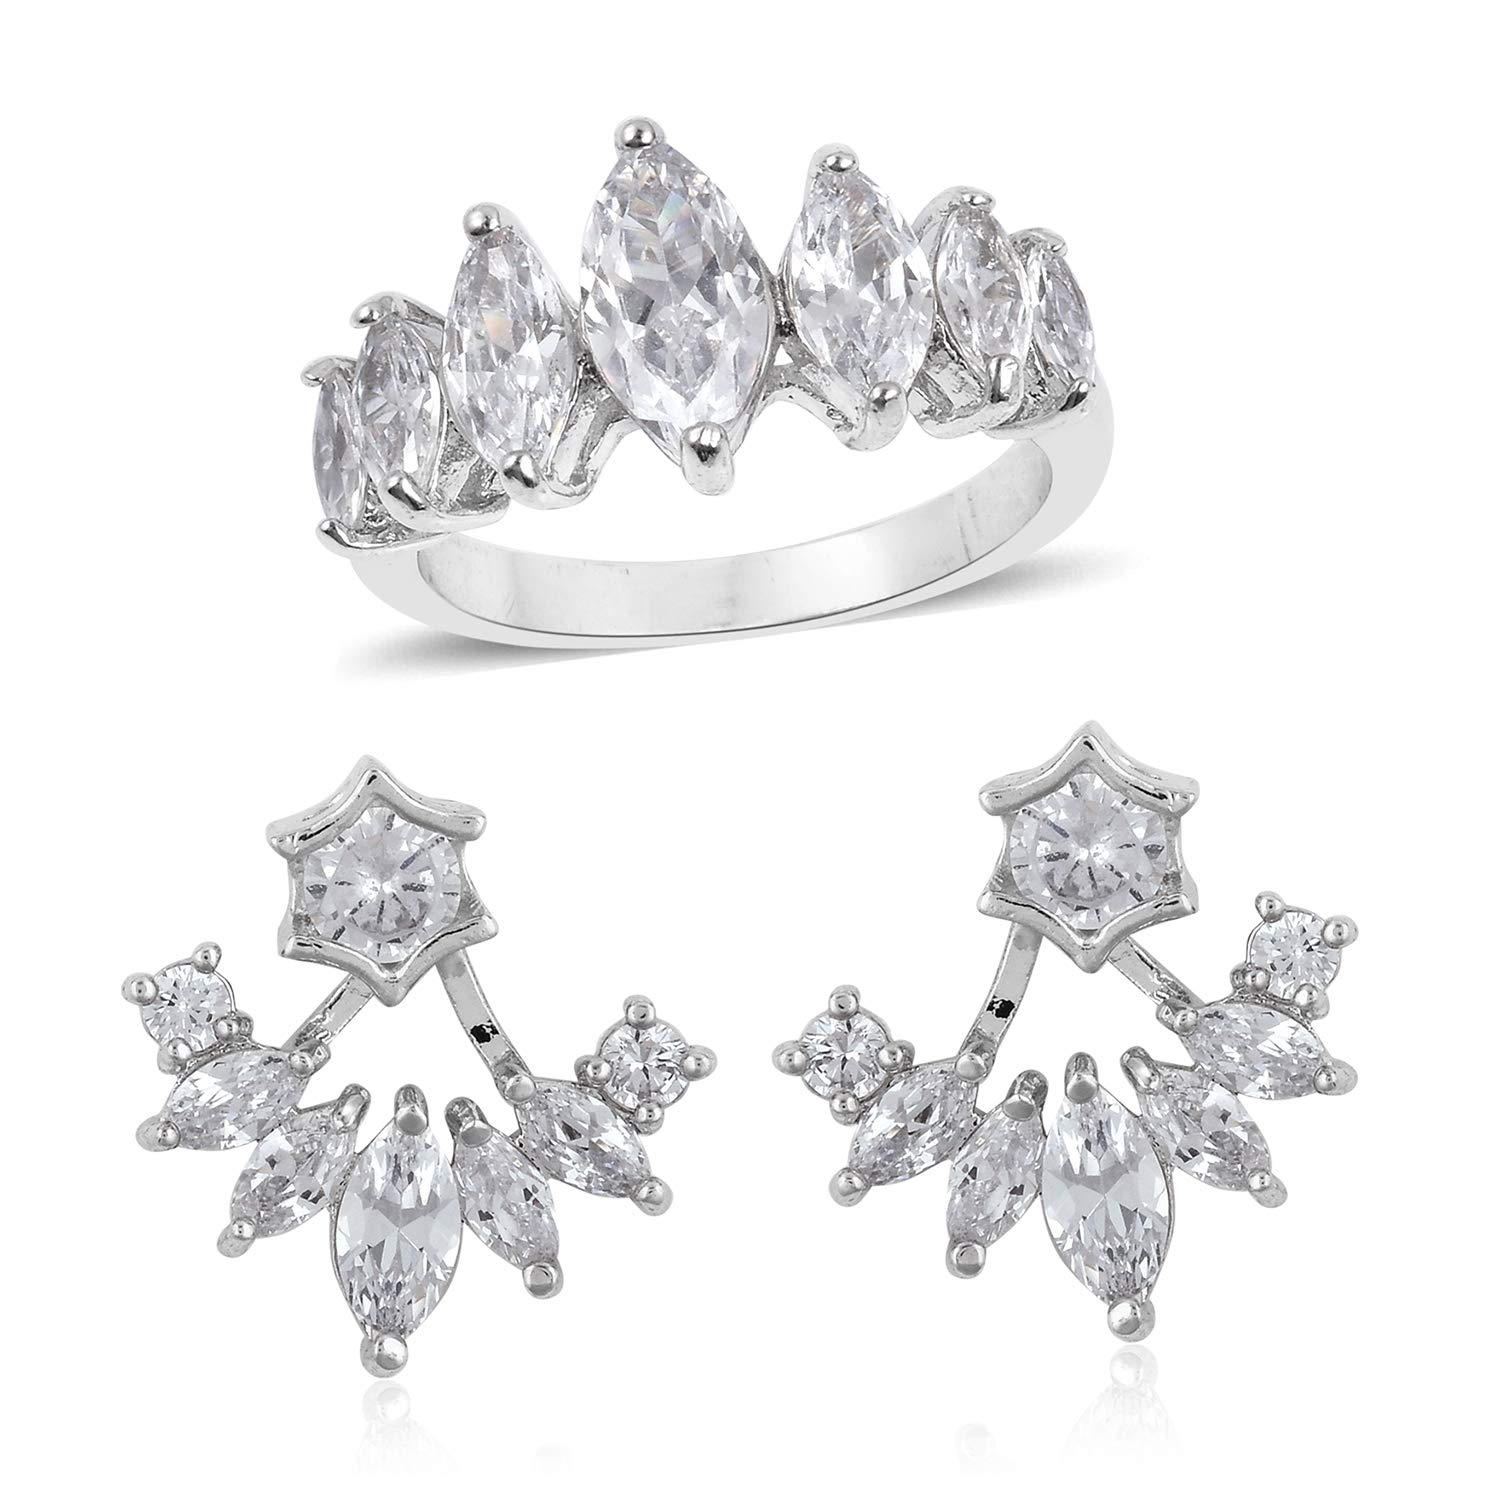 Silvertone Round White Cubic Zirconia Statement Ring Size 7 Earring Set for Women Cttw 2.9